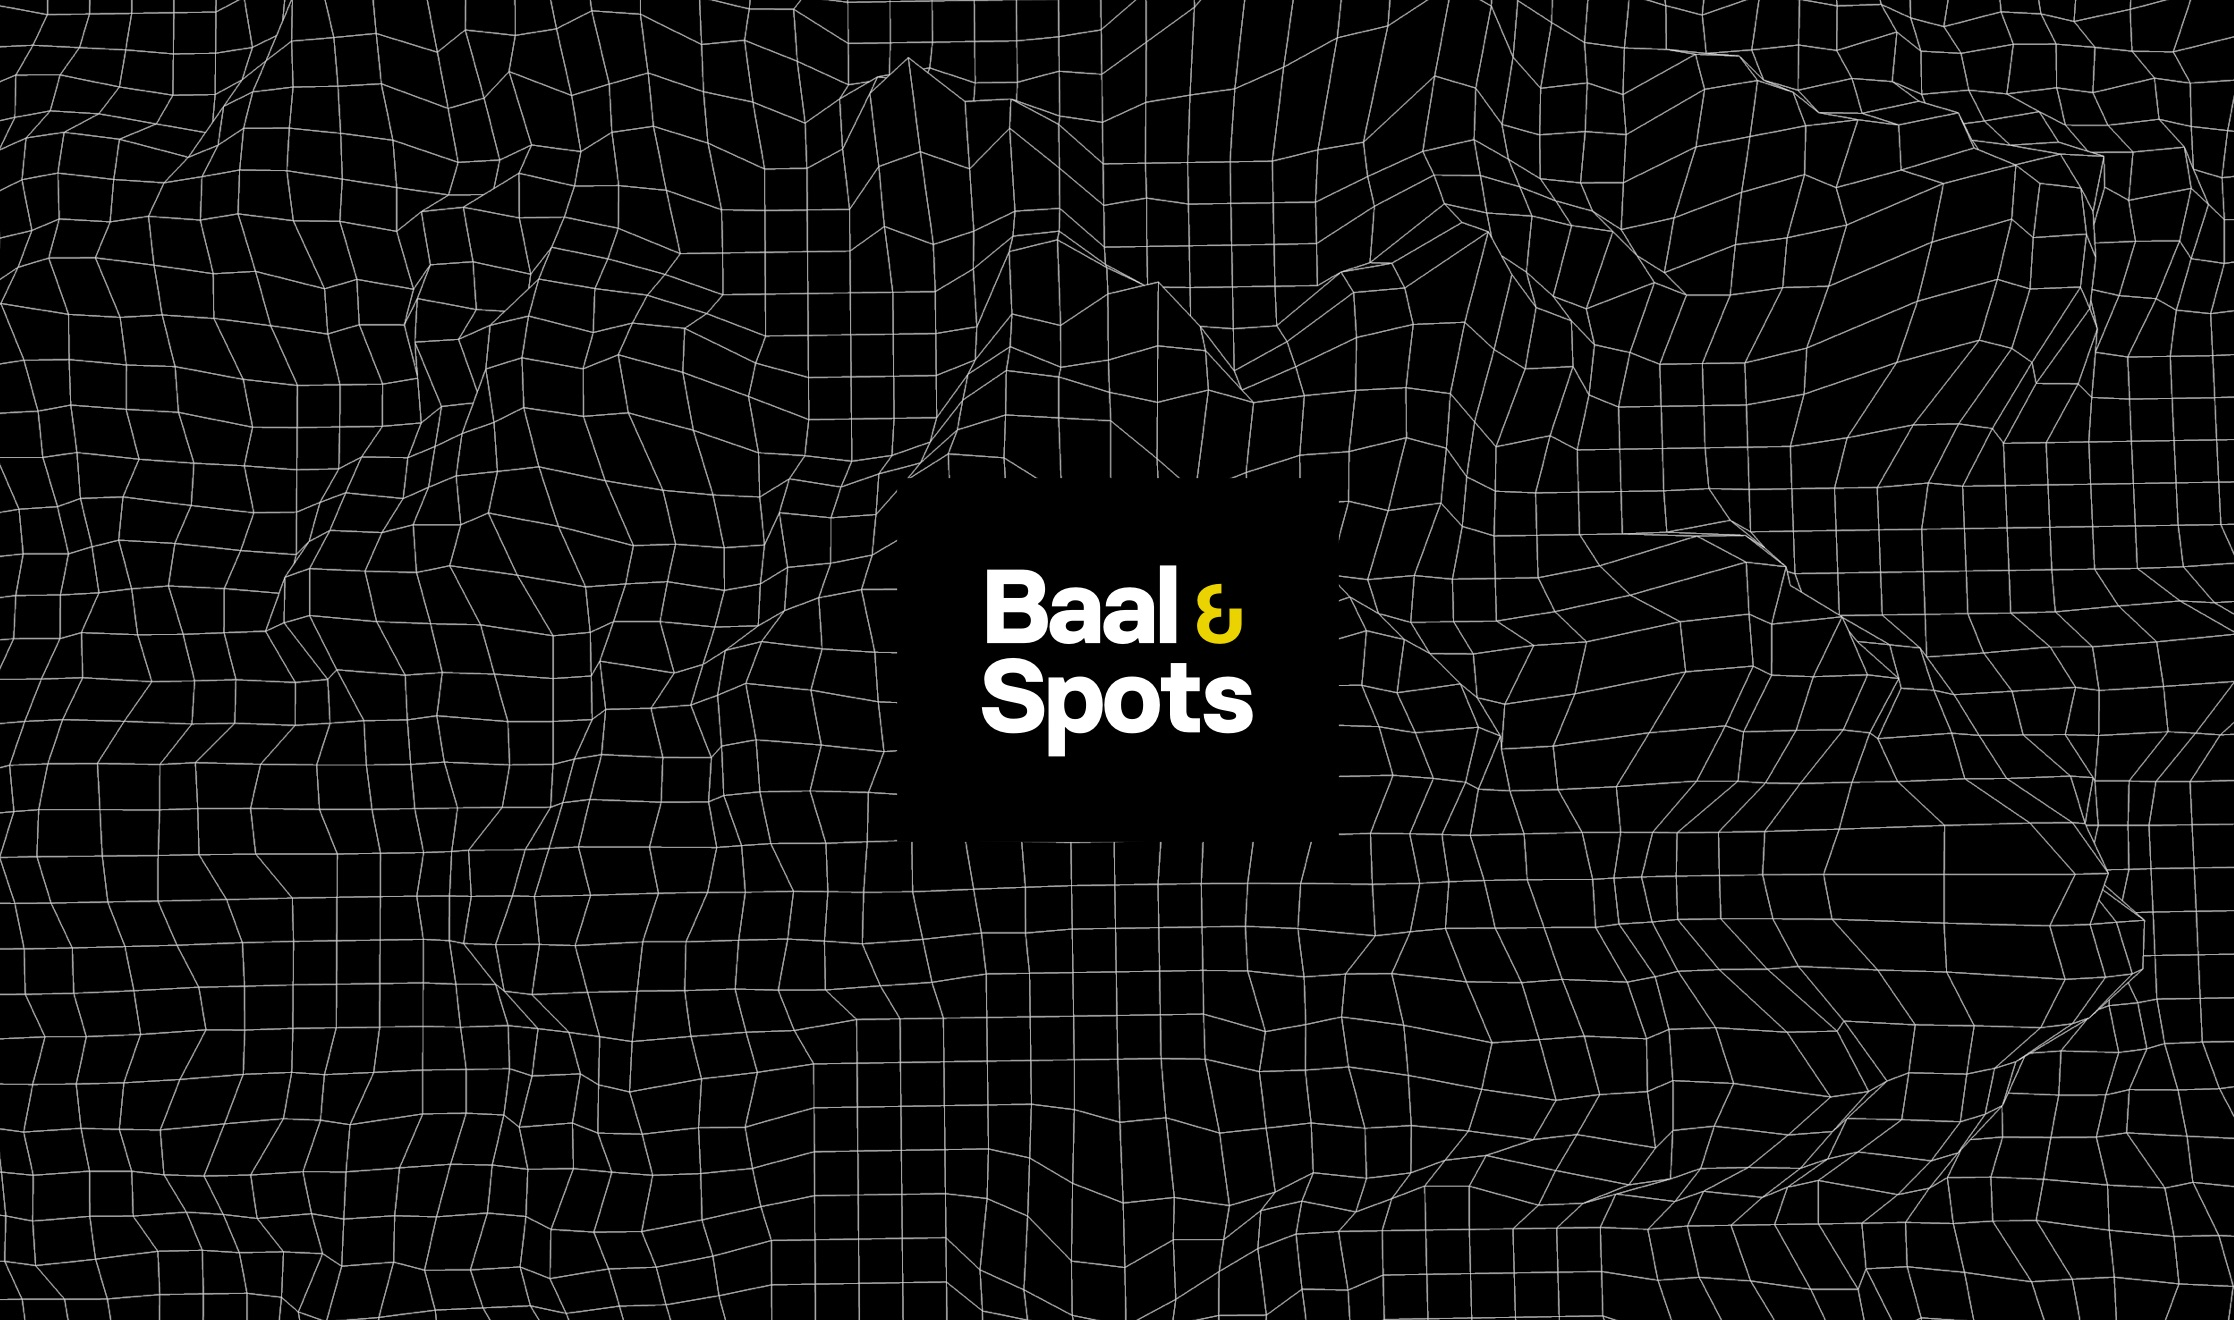 A Letter from the Baal & Spots Founders